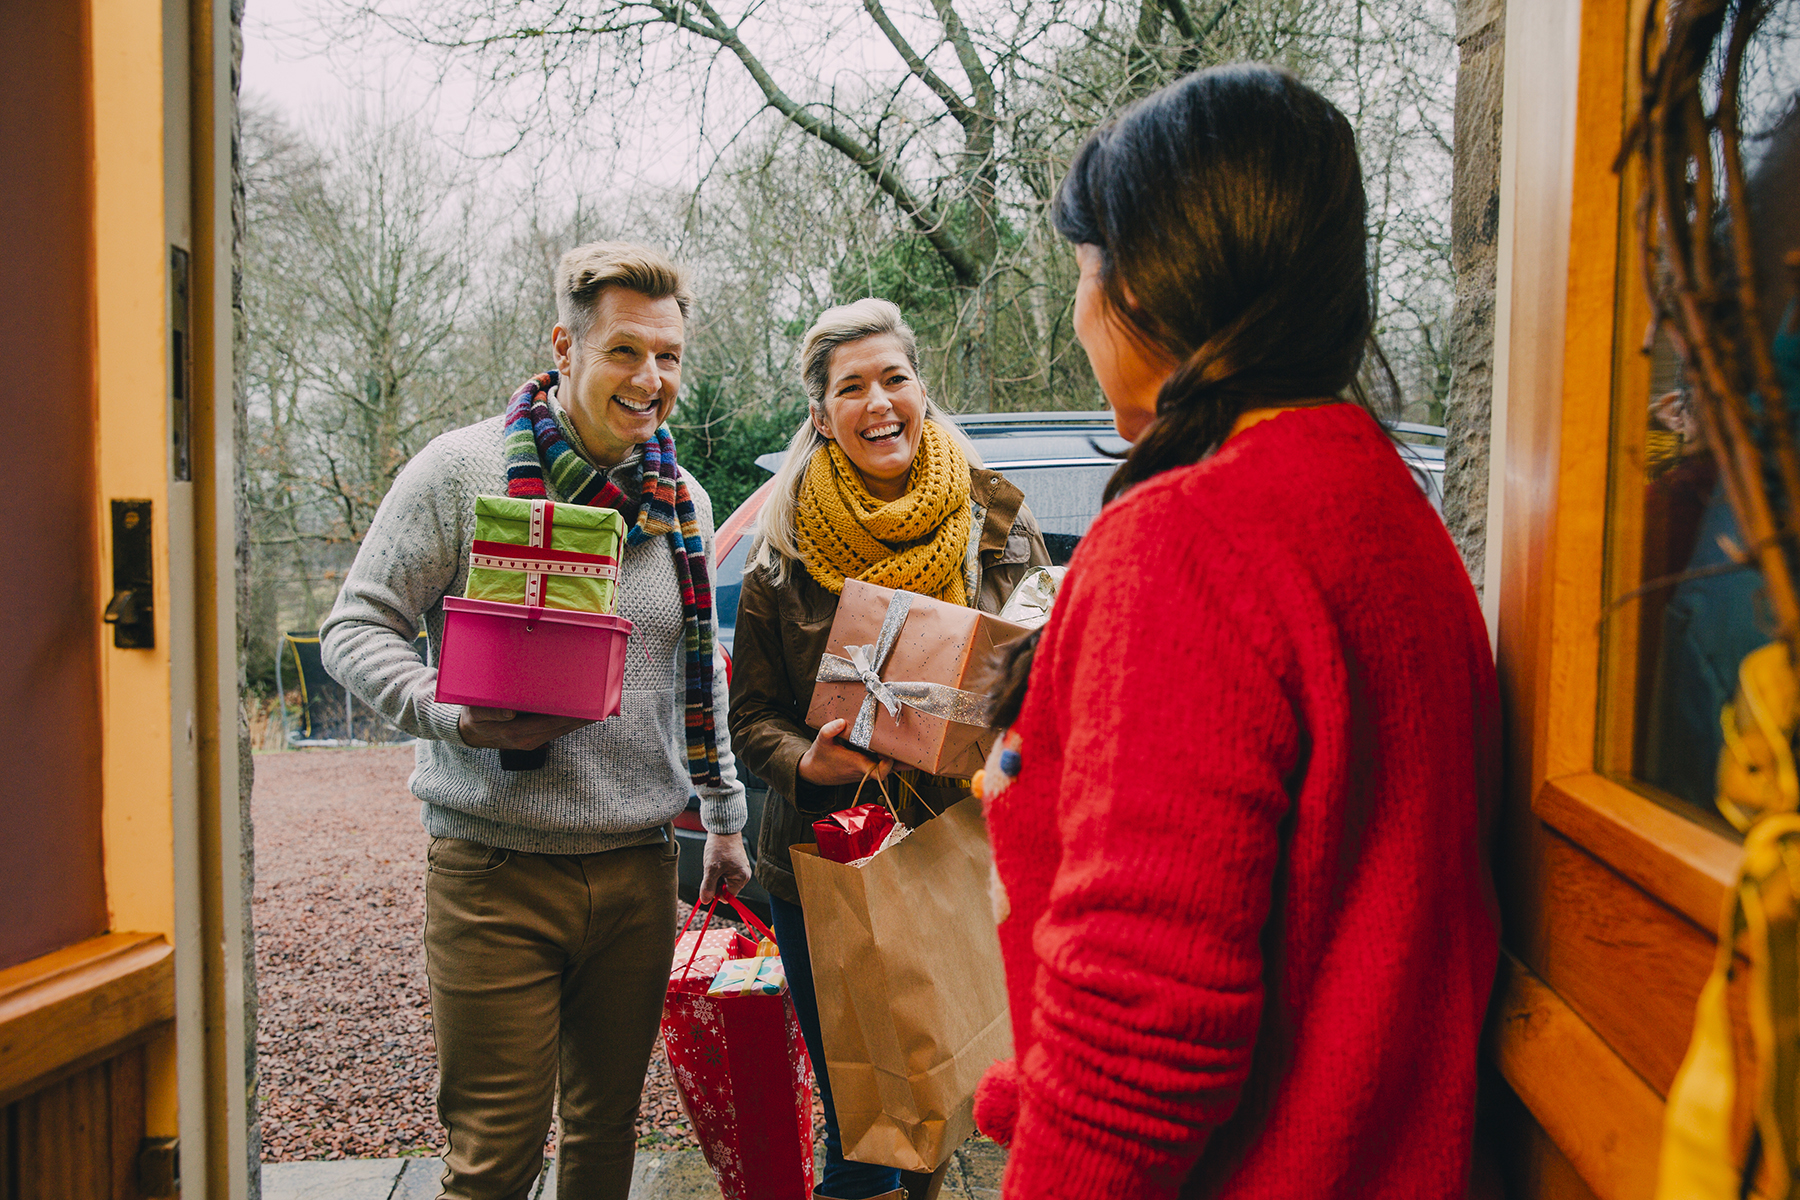 Family members arriving at house with holiday gifts